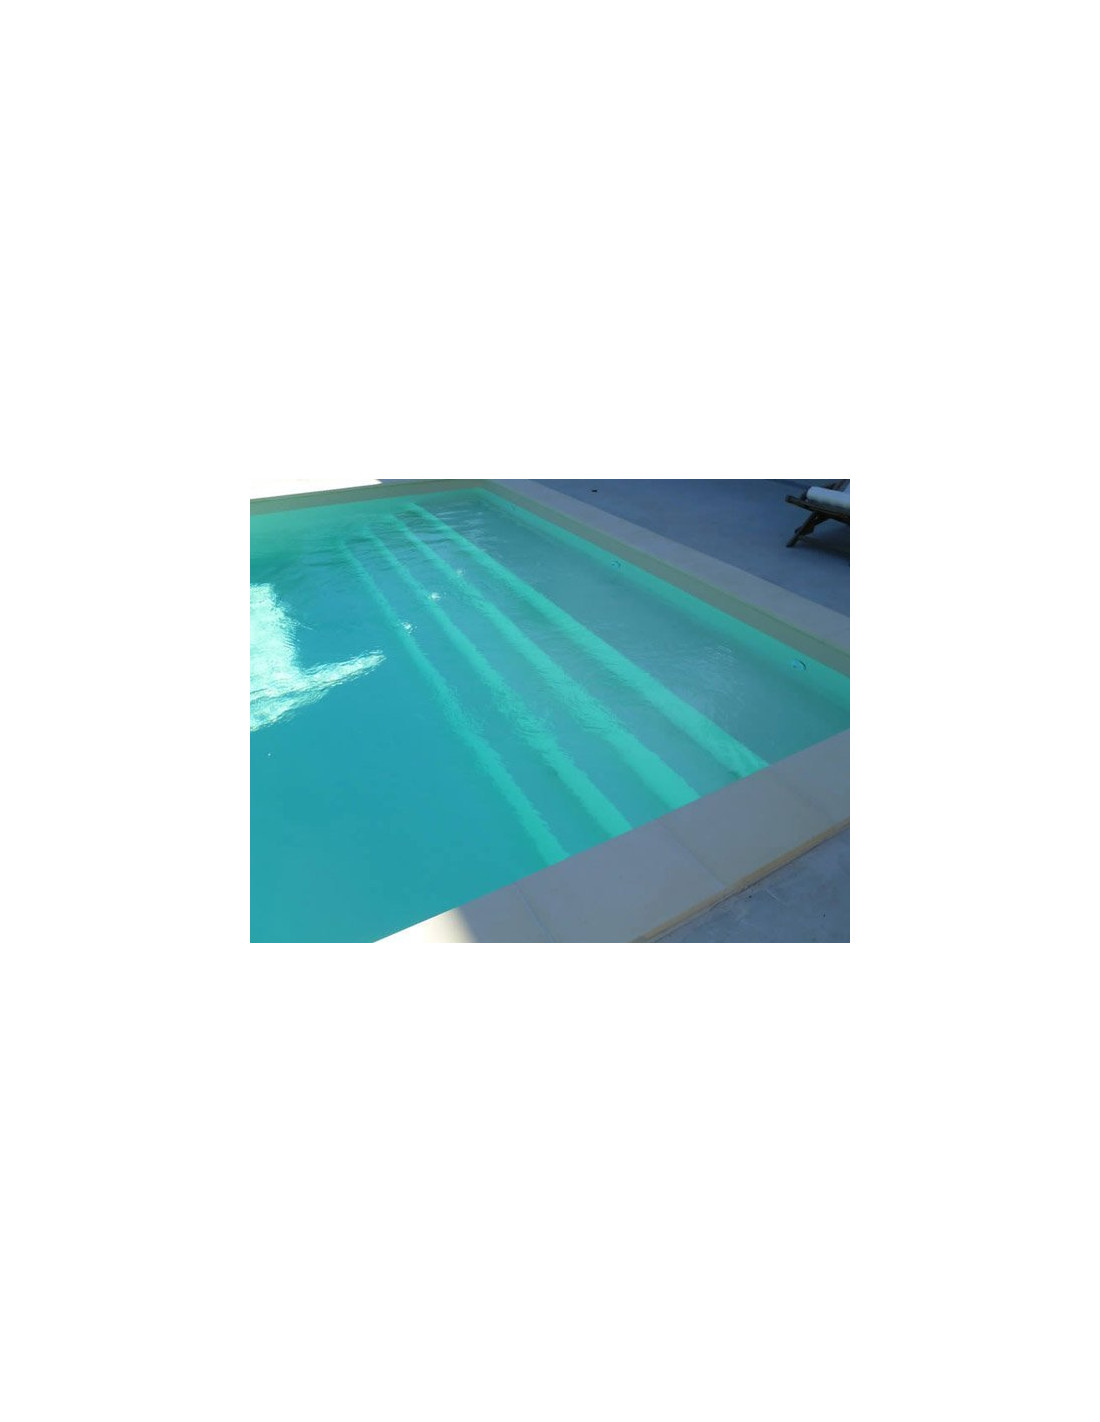 Kit piscine enterr e avec escalier modulo for Home piscine